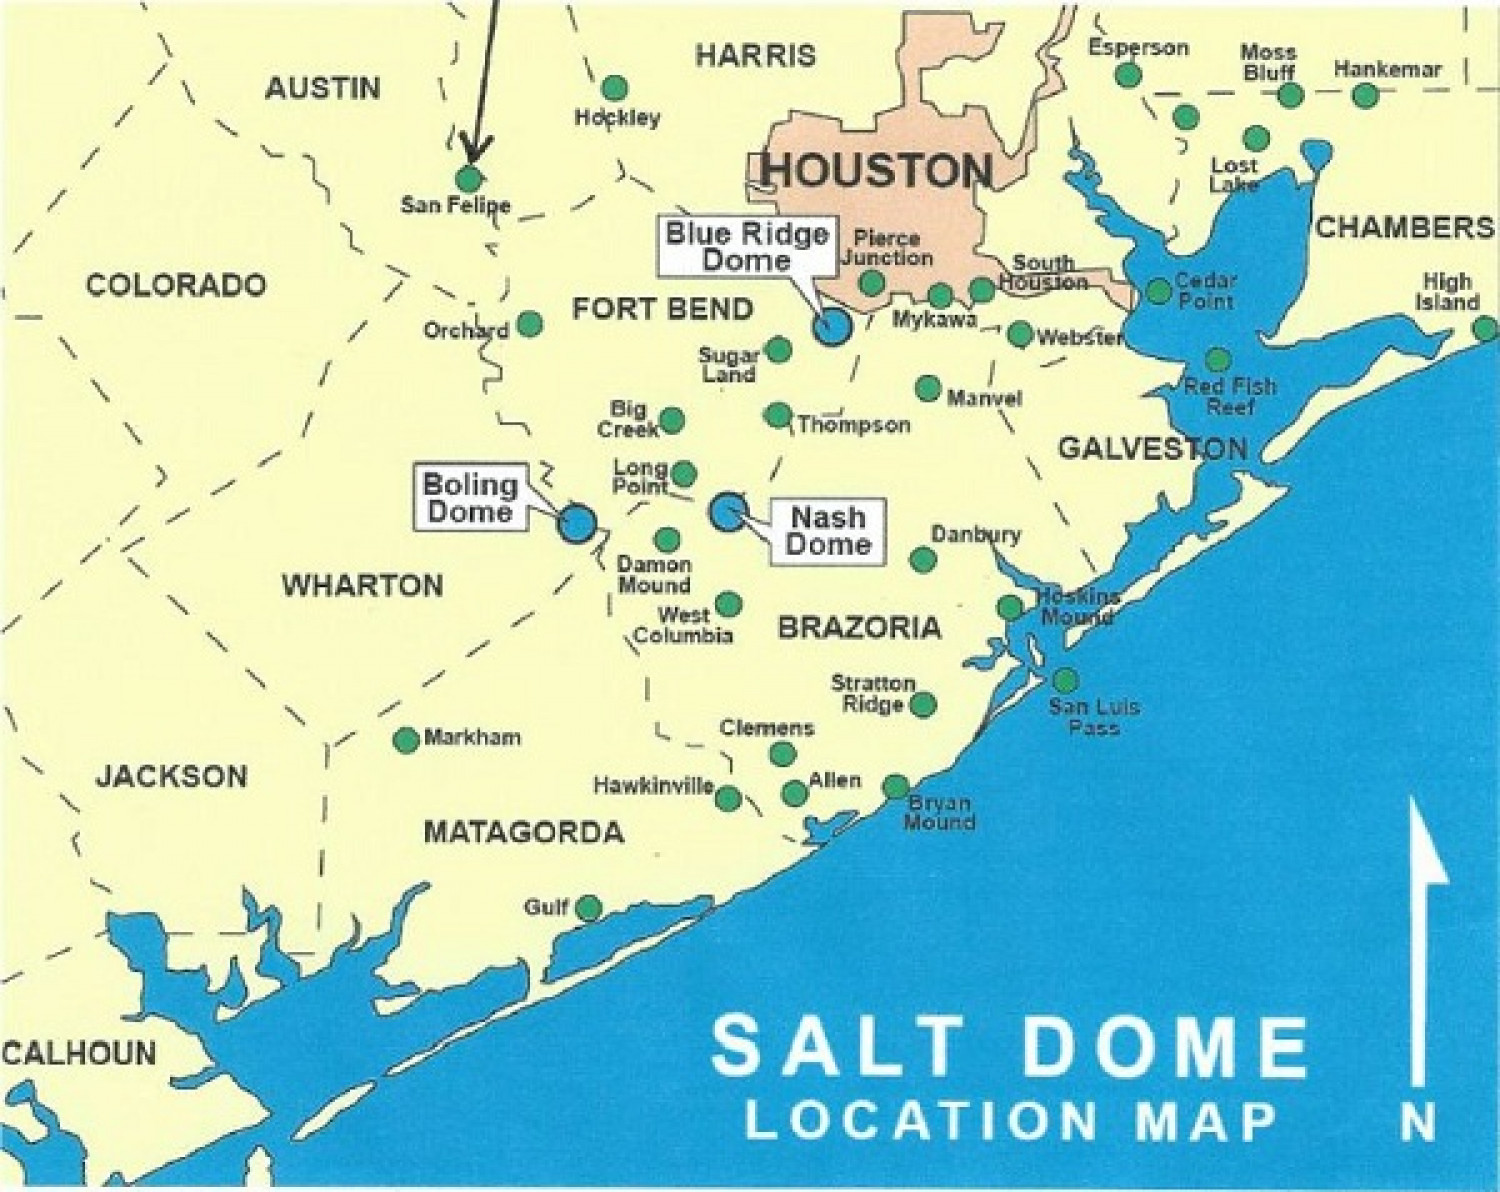 Texas Energy Exploration LLC SaltDome Locations Visually